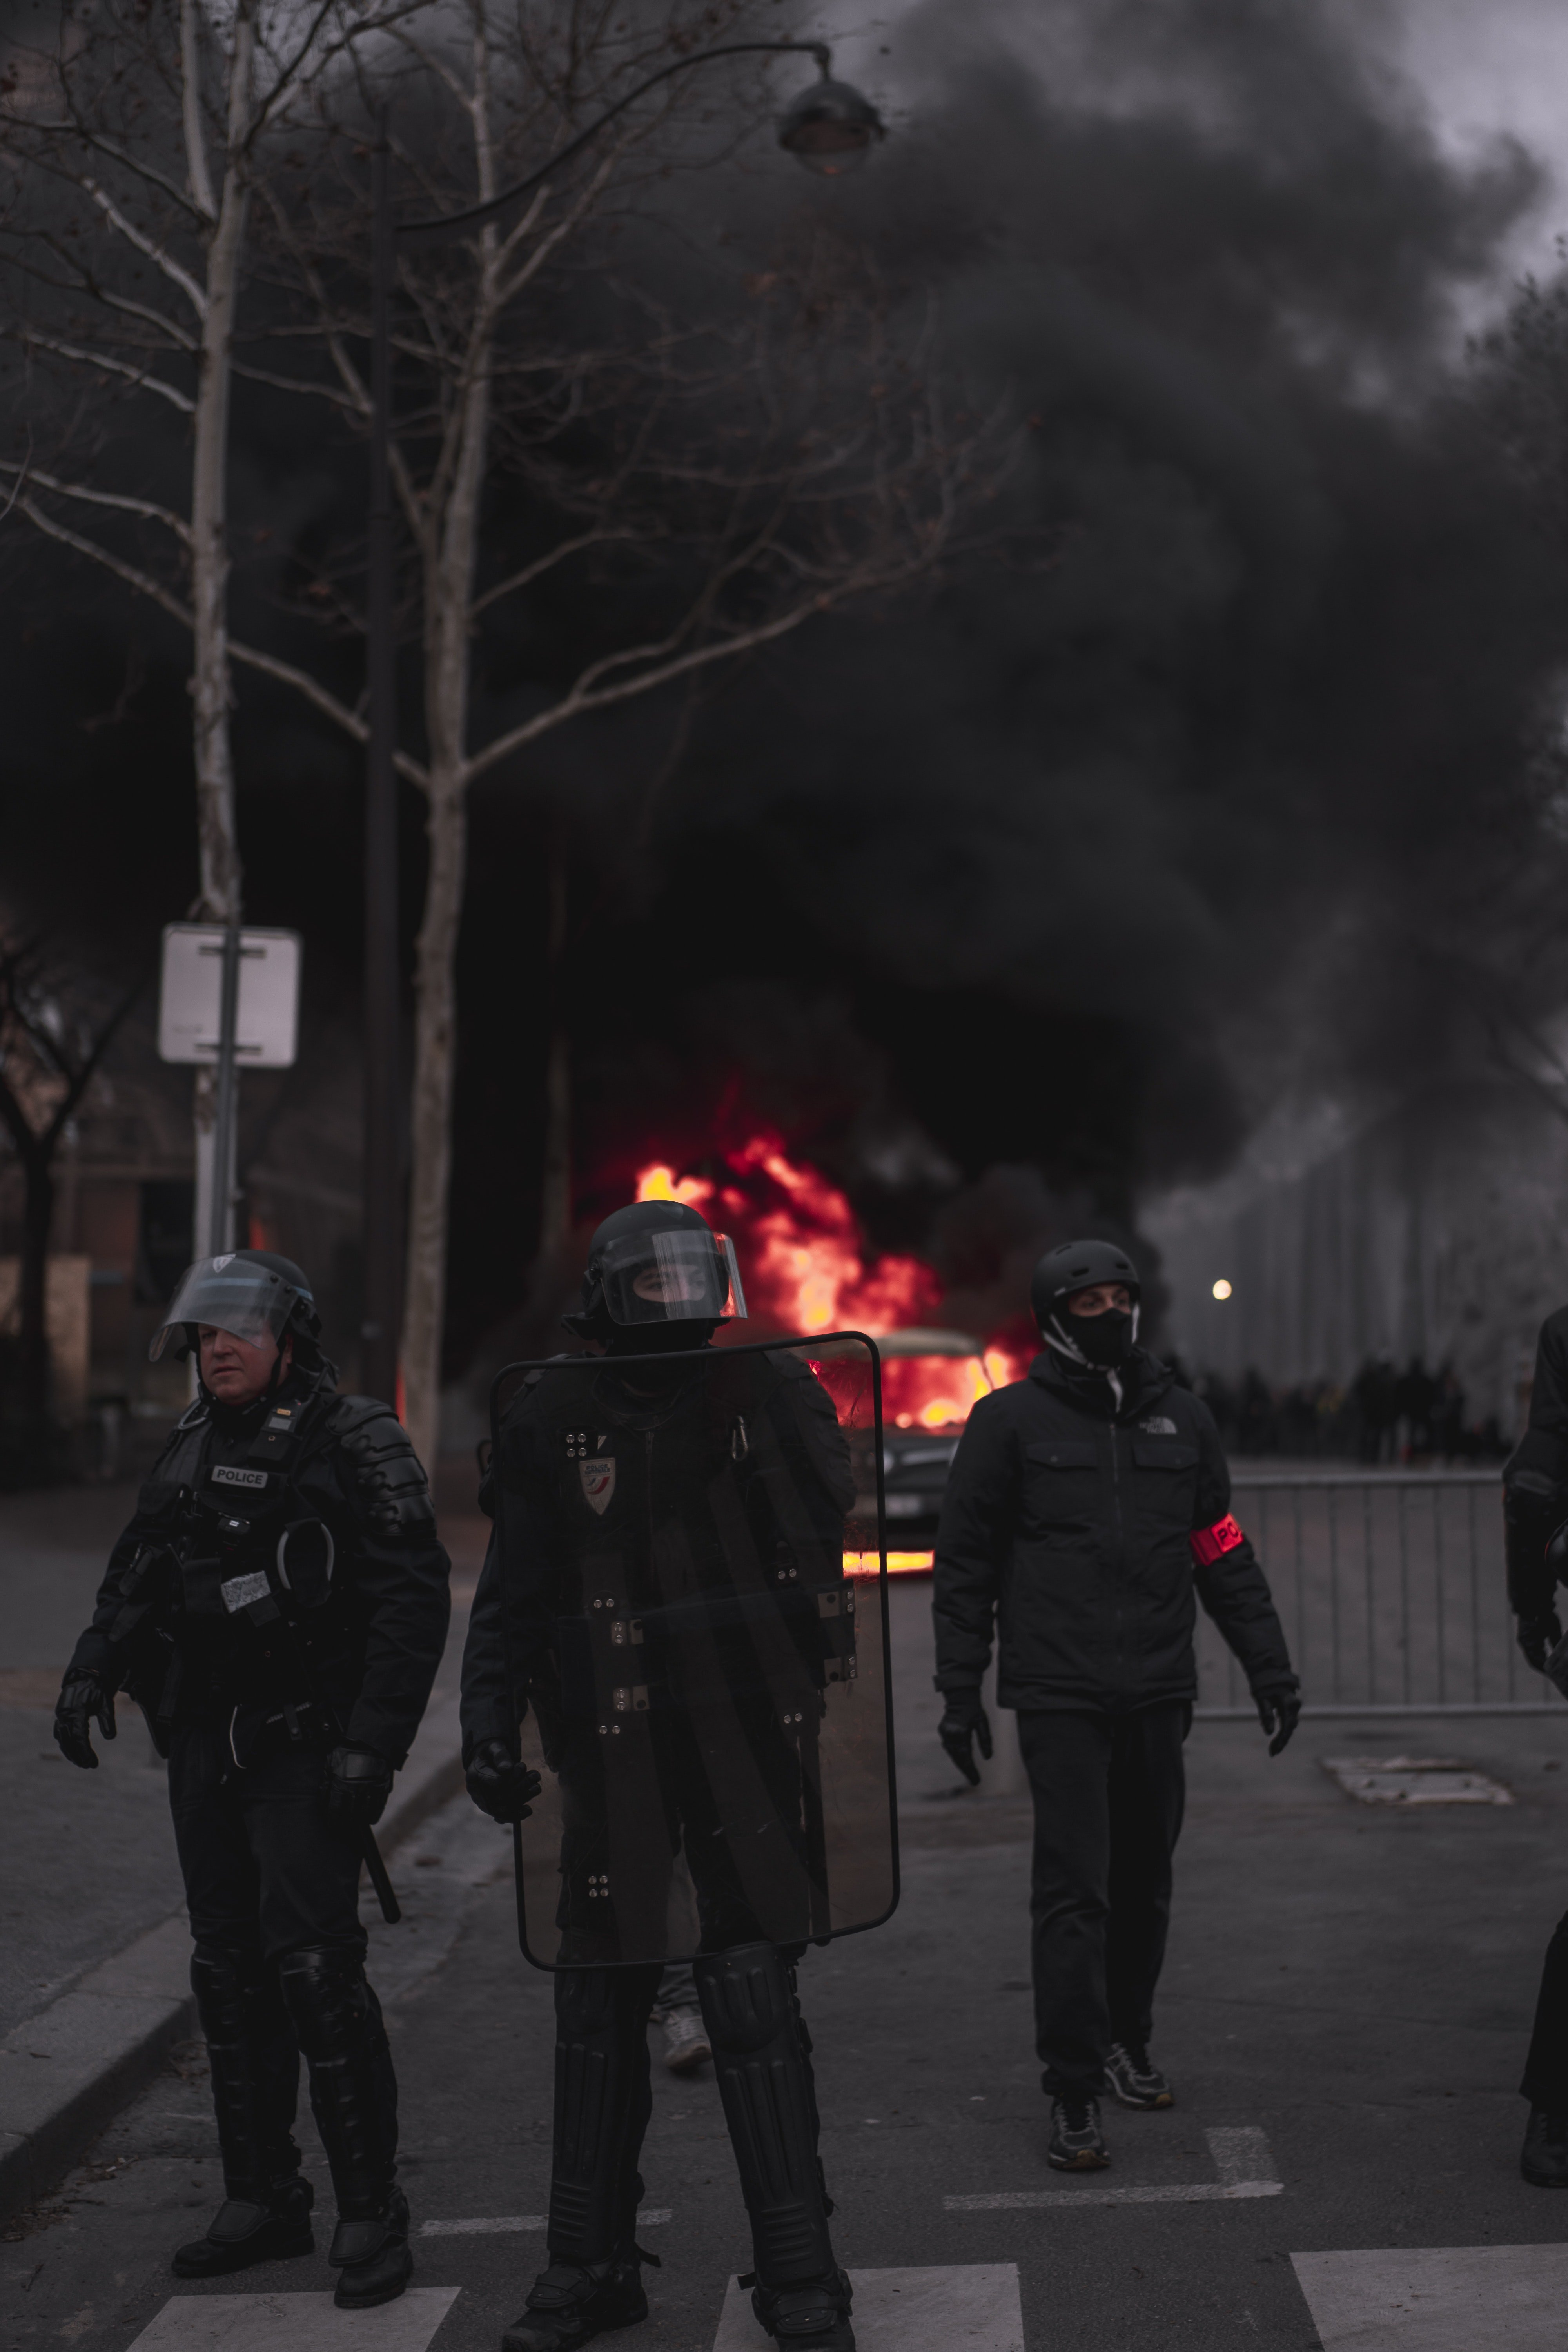 Policemen in front of a fire   Photo: Pexels